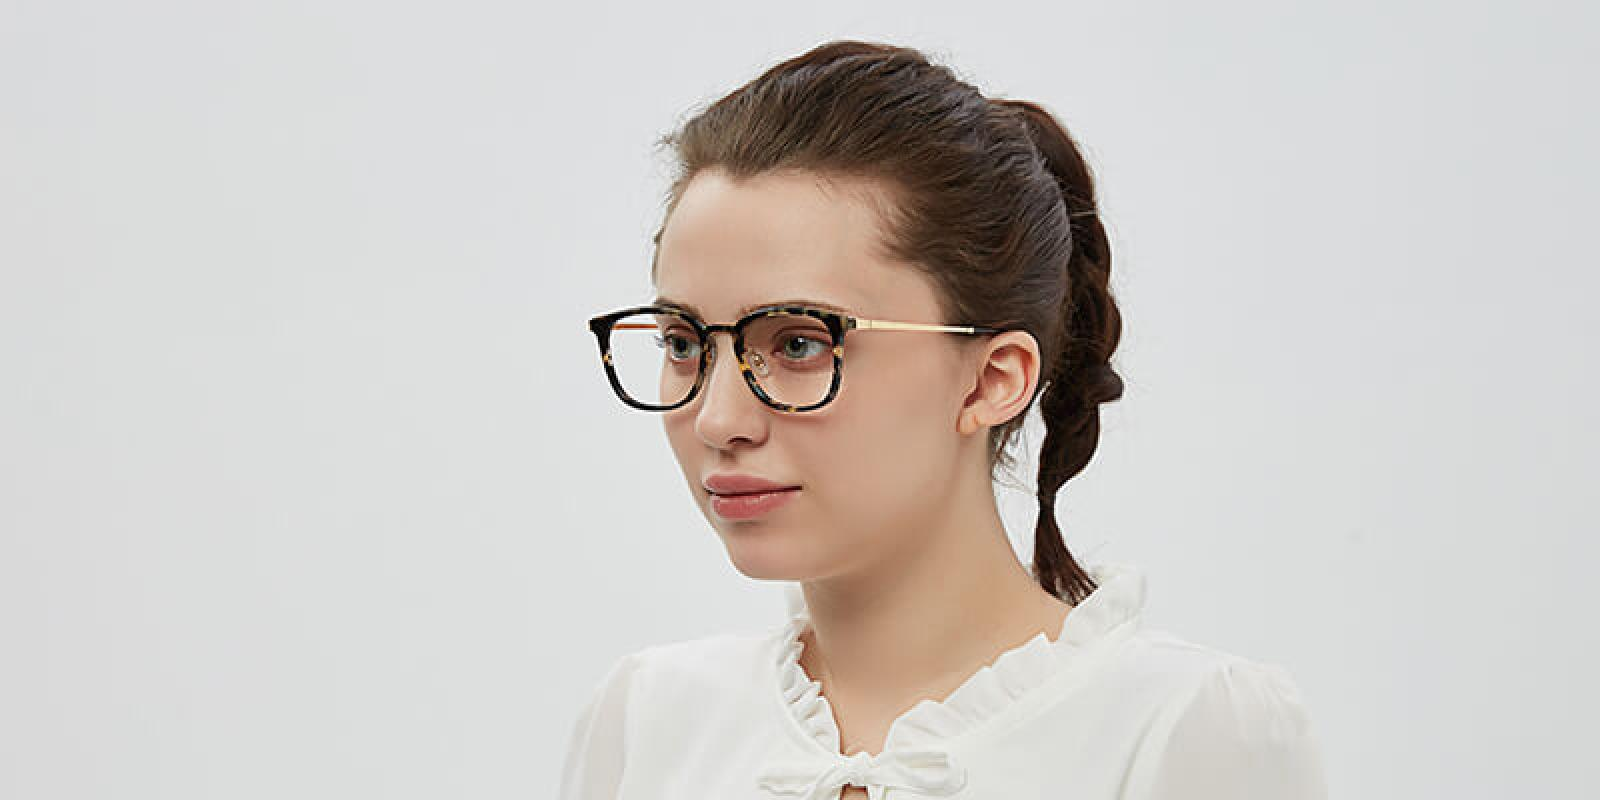 Keronito-Leopard-Metal-Eyeglasses-detail2